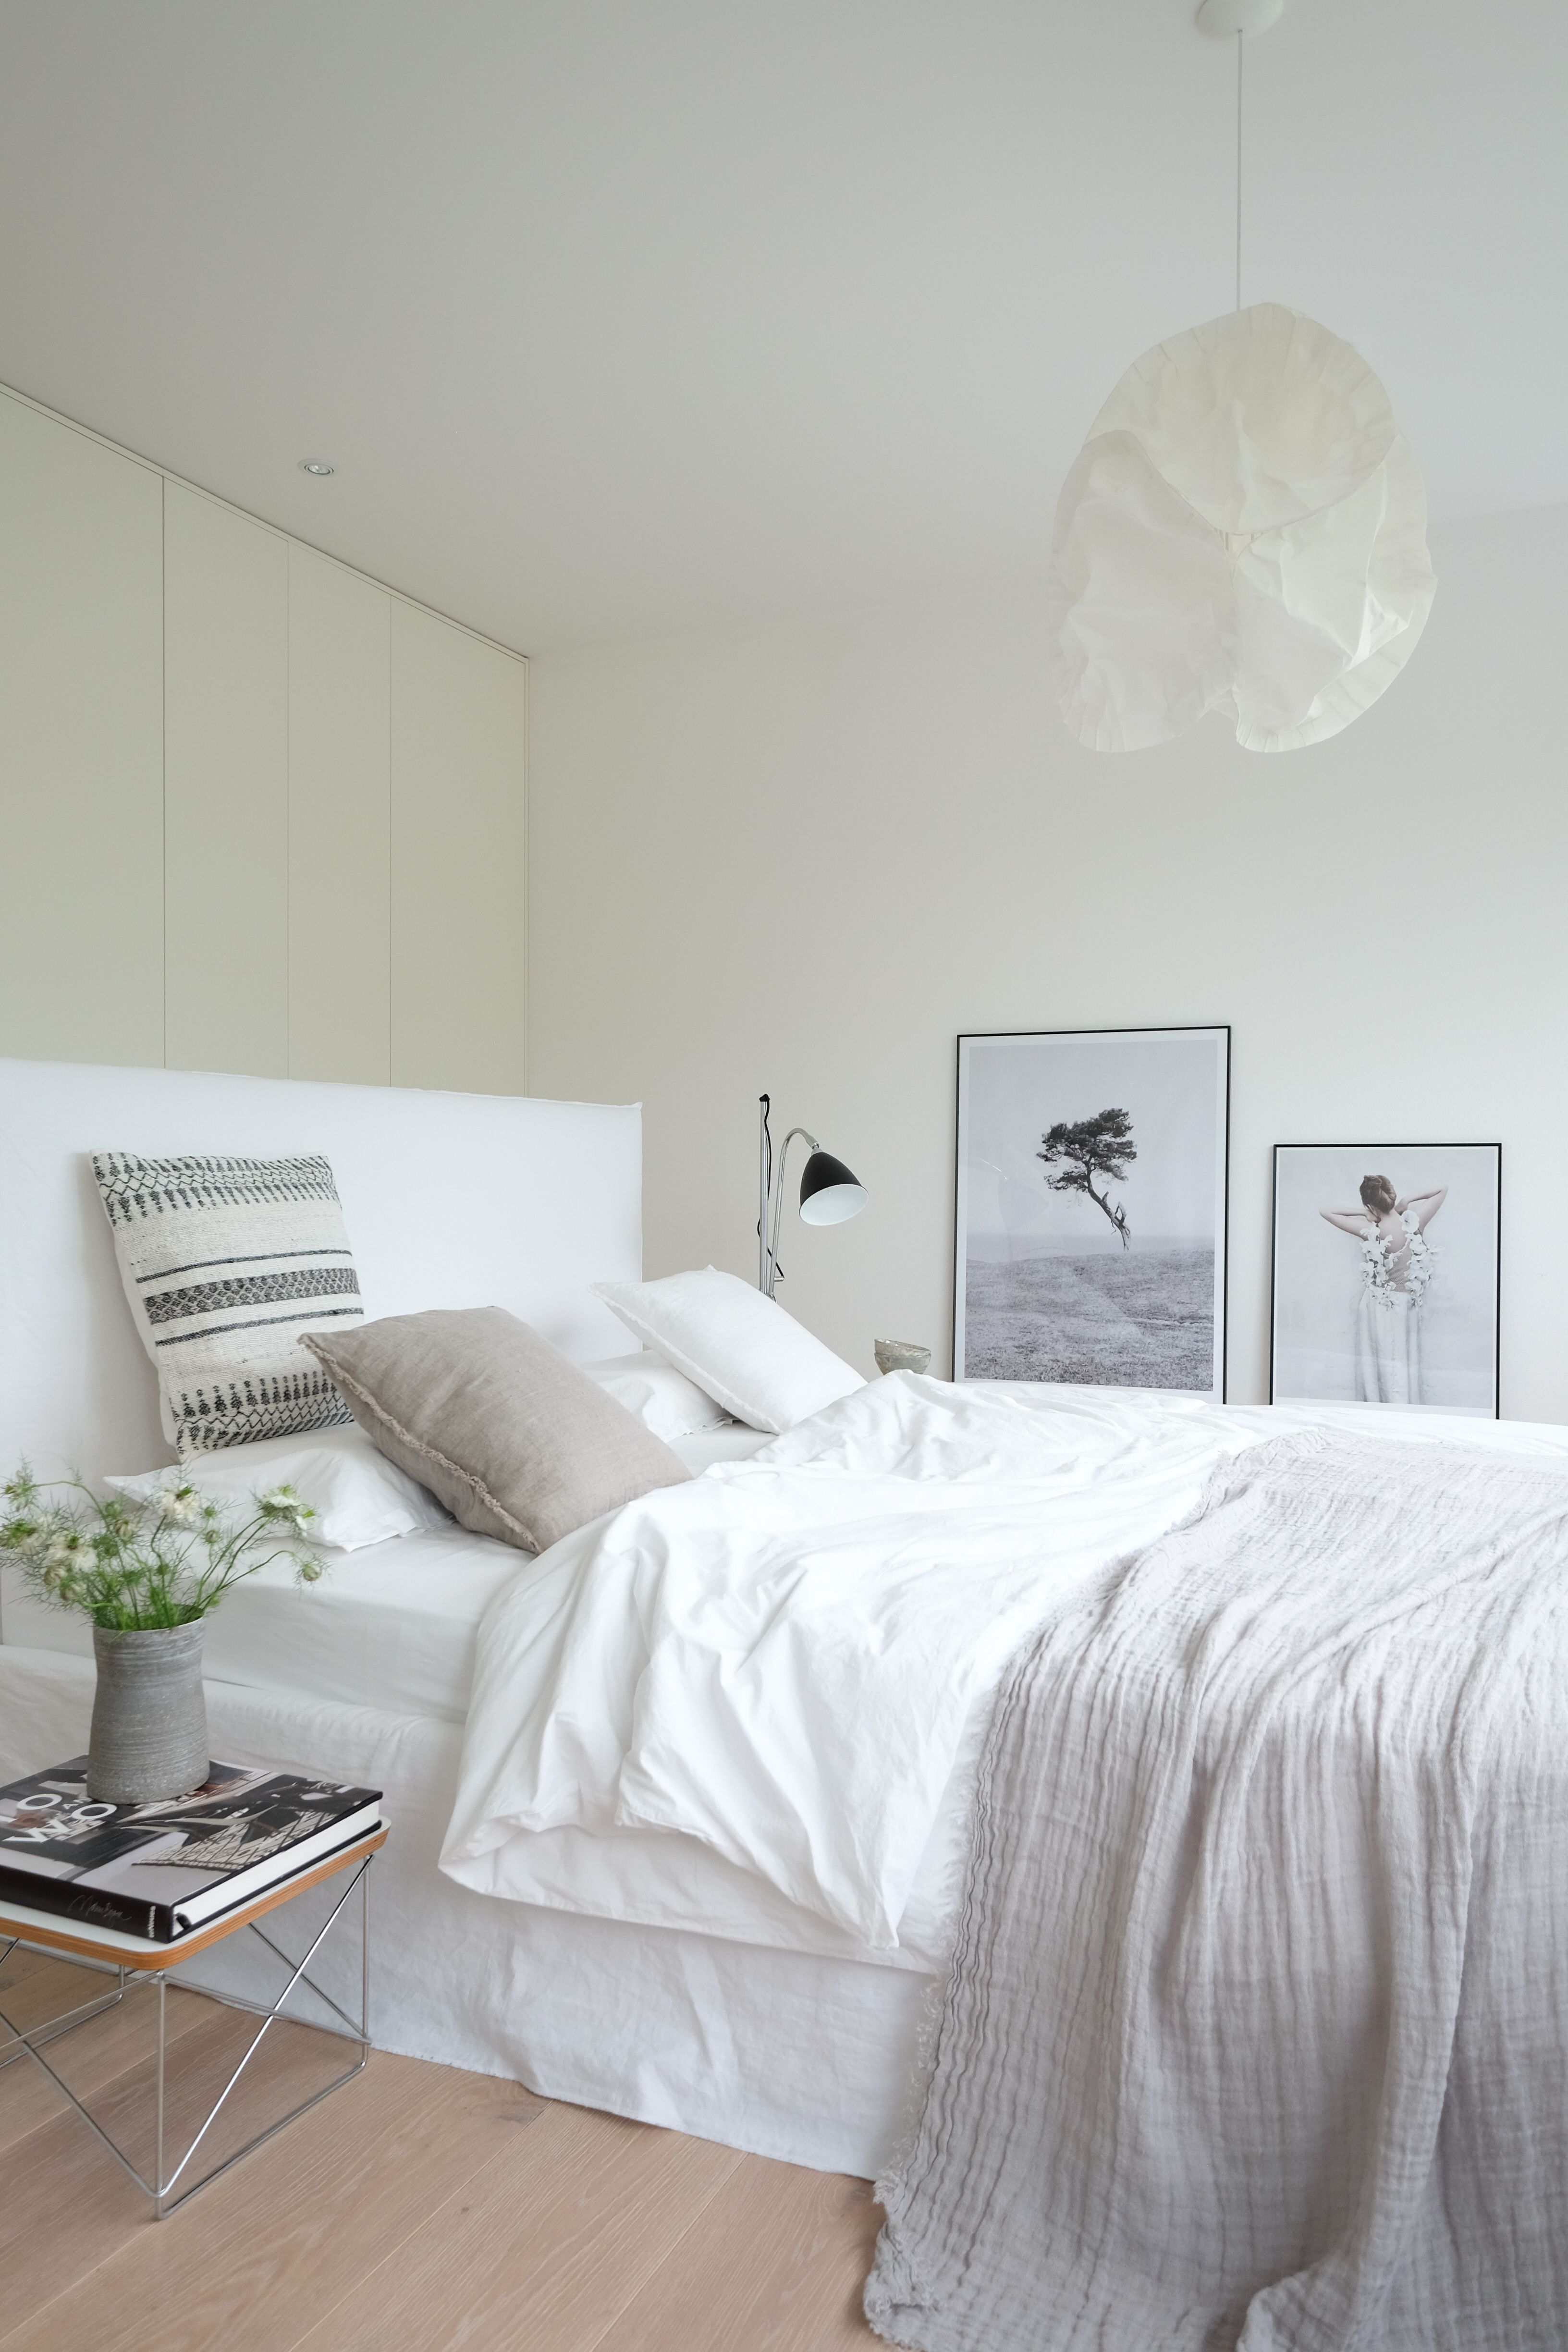 Sommer-Schlafzimmer.......   Bedrooms, Room ideas and Roomspiration